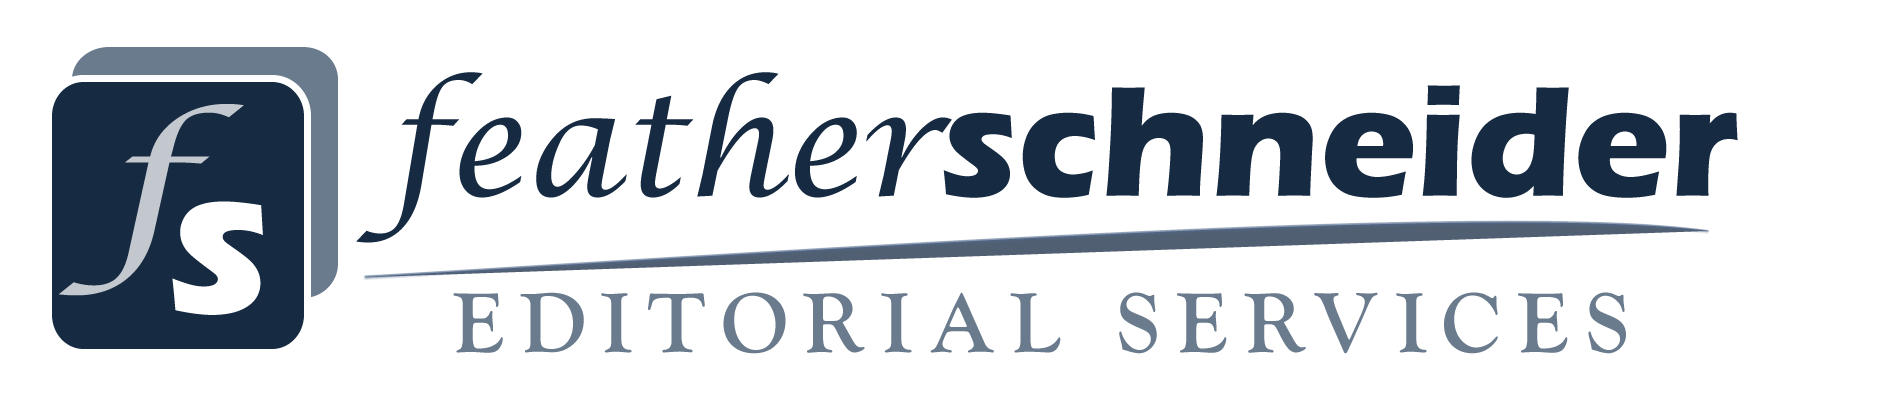 Featherschneider Editorial Services